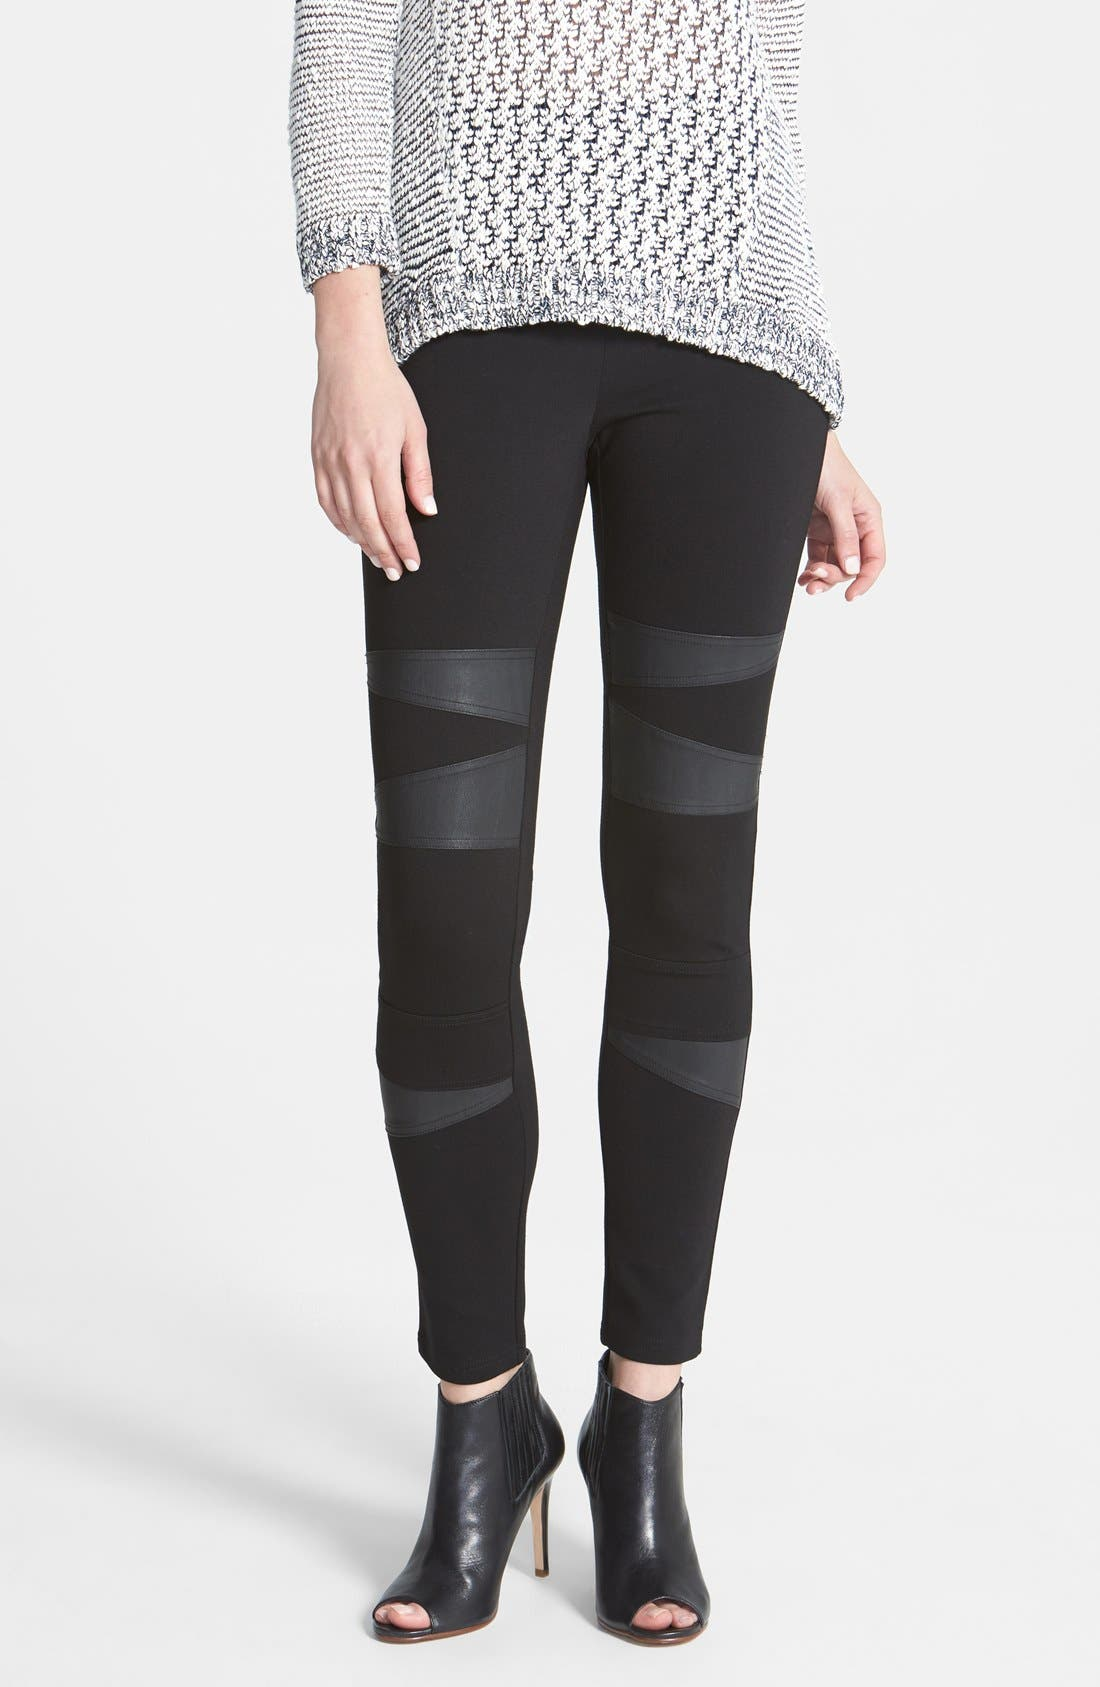 Alternate Image 1 Selected - Two by Vince Camuto Faux Leather Trim Moto Leggings